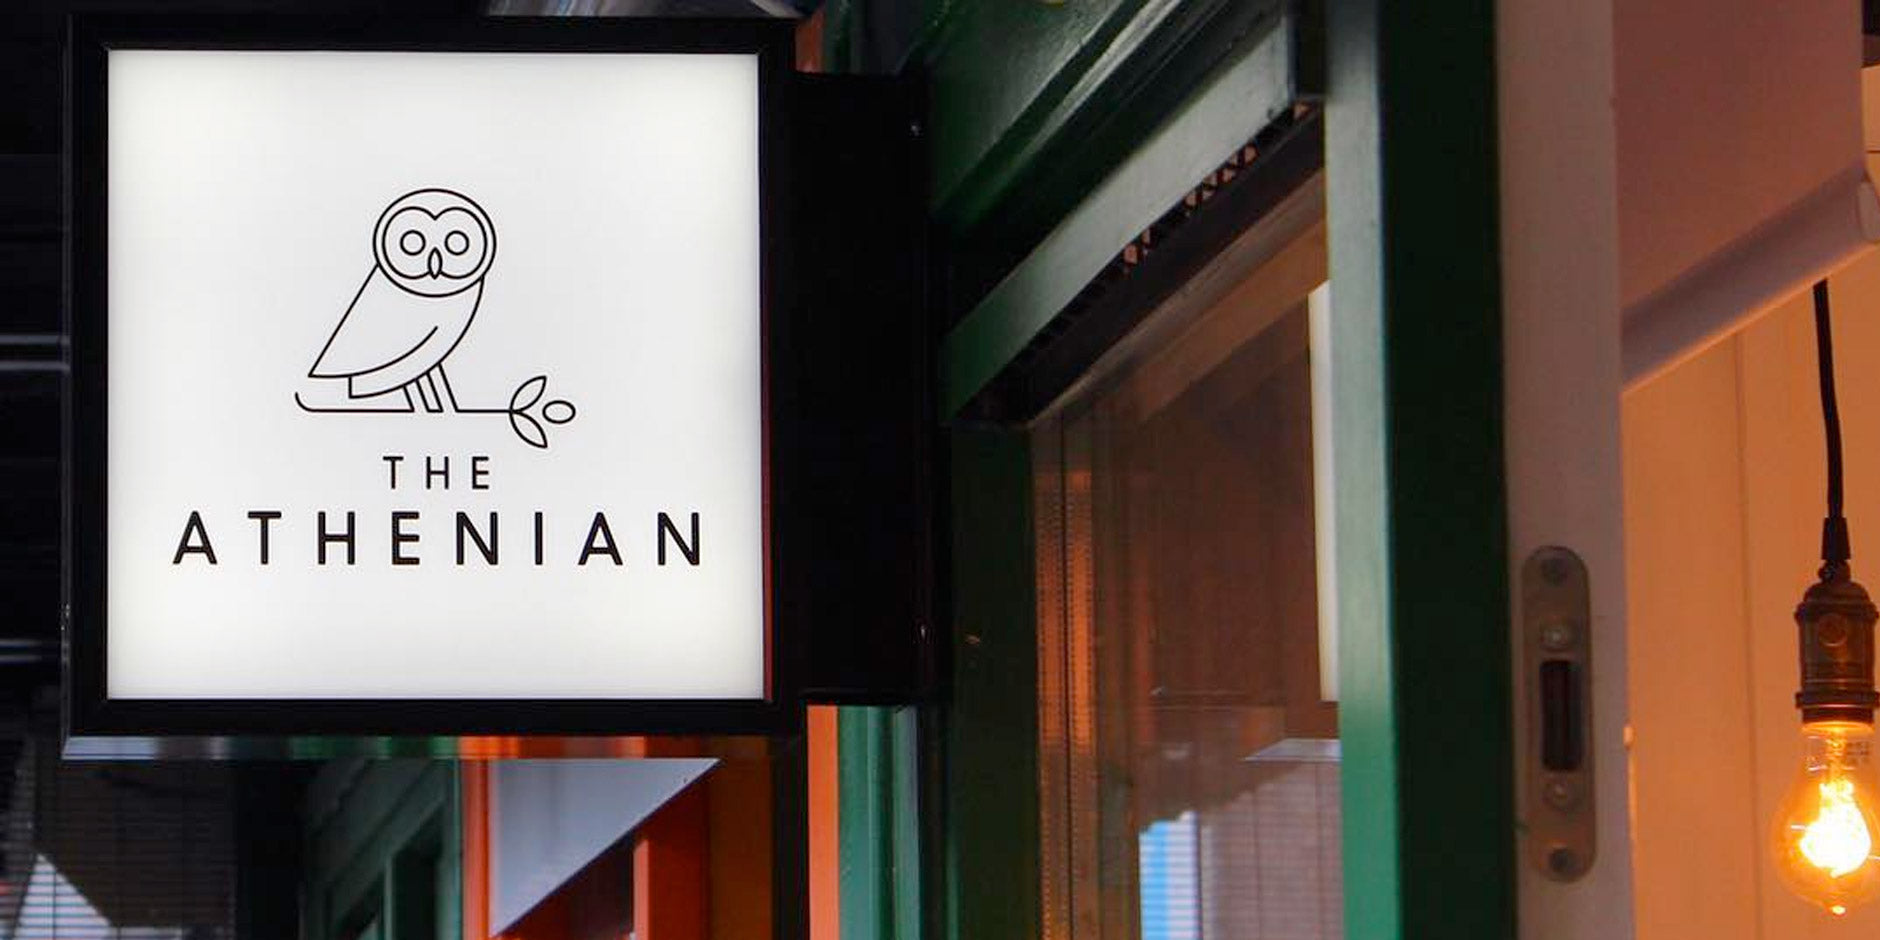 the anthenian restaurant sign